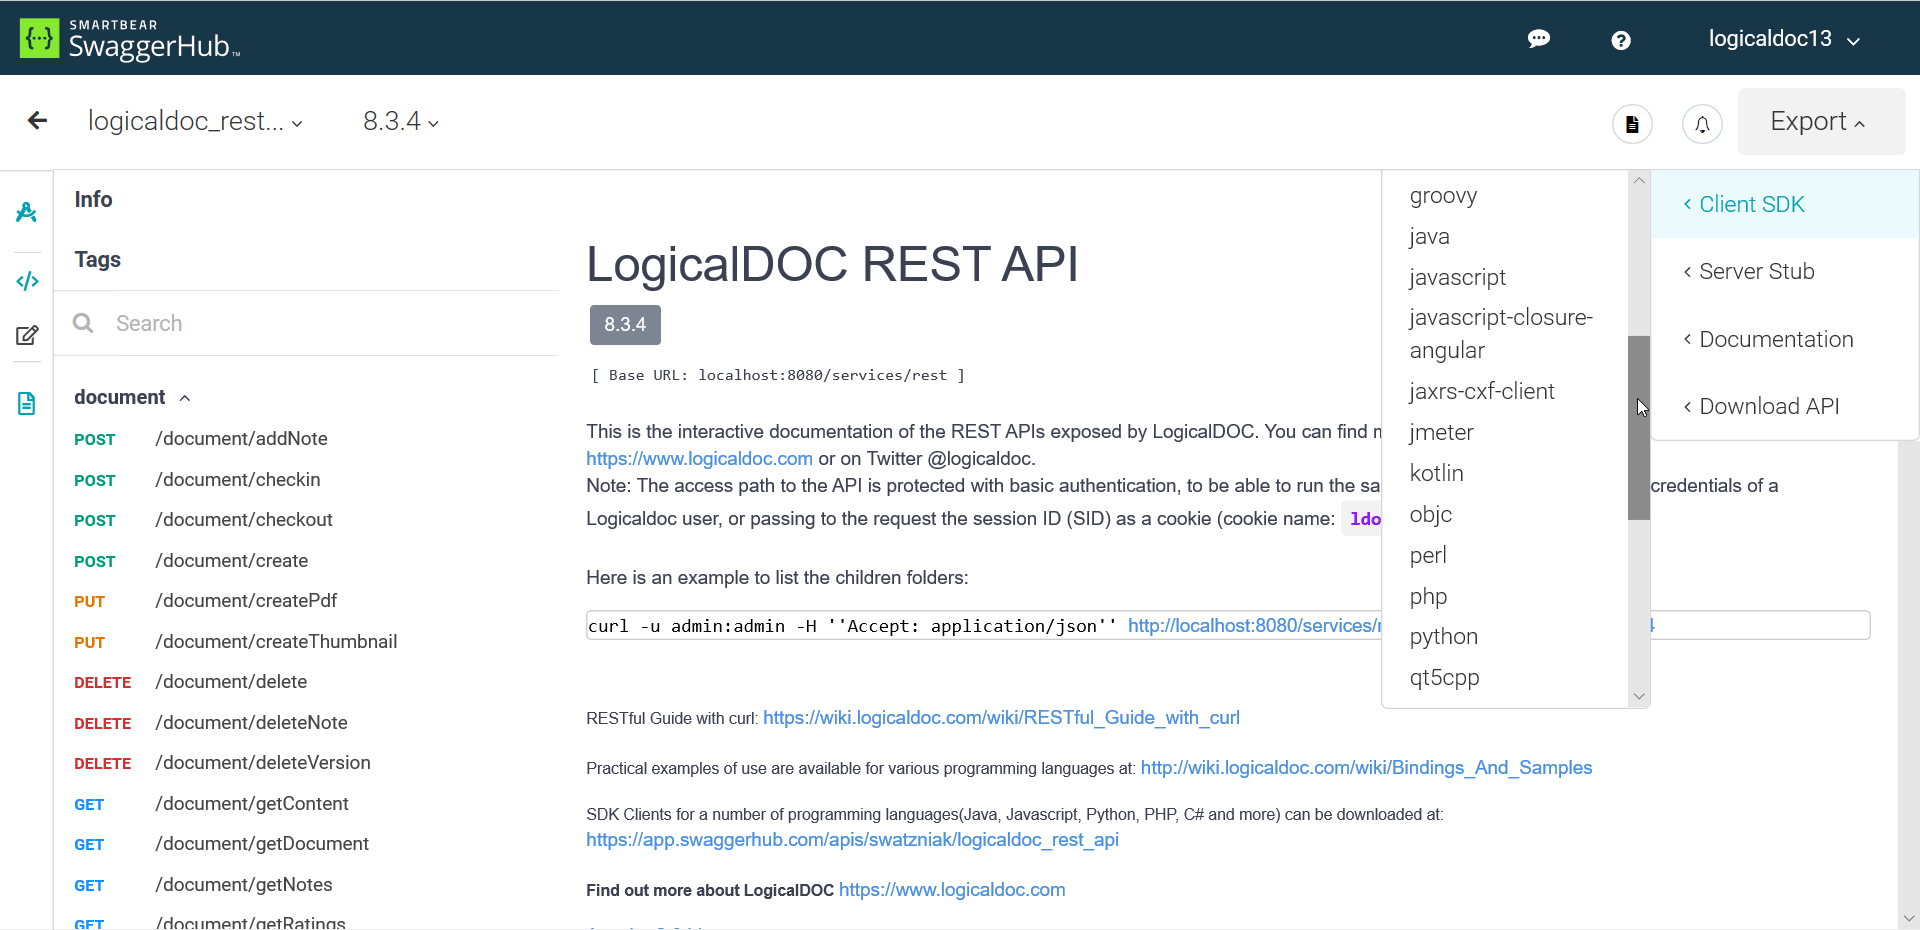 LogicalDOC REST API at SwaggerHub